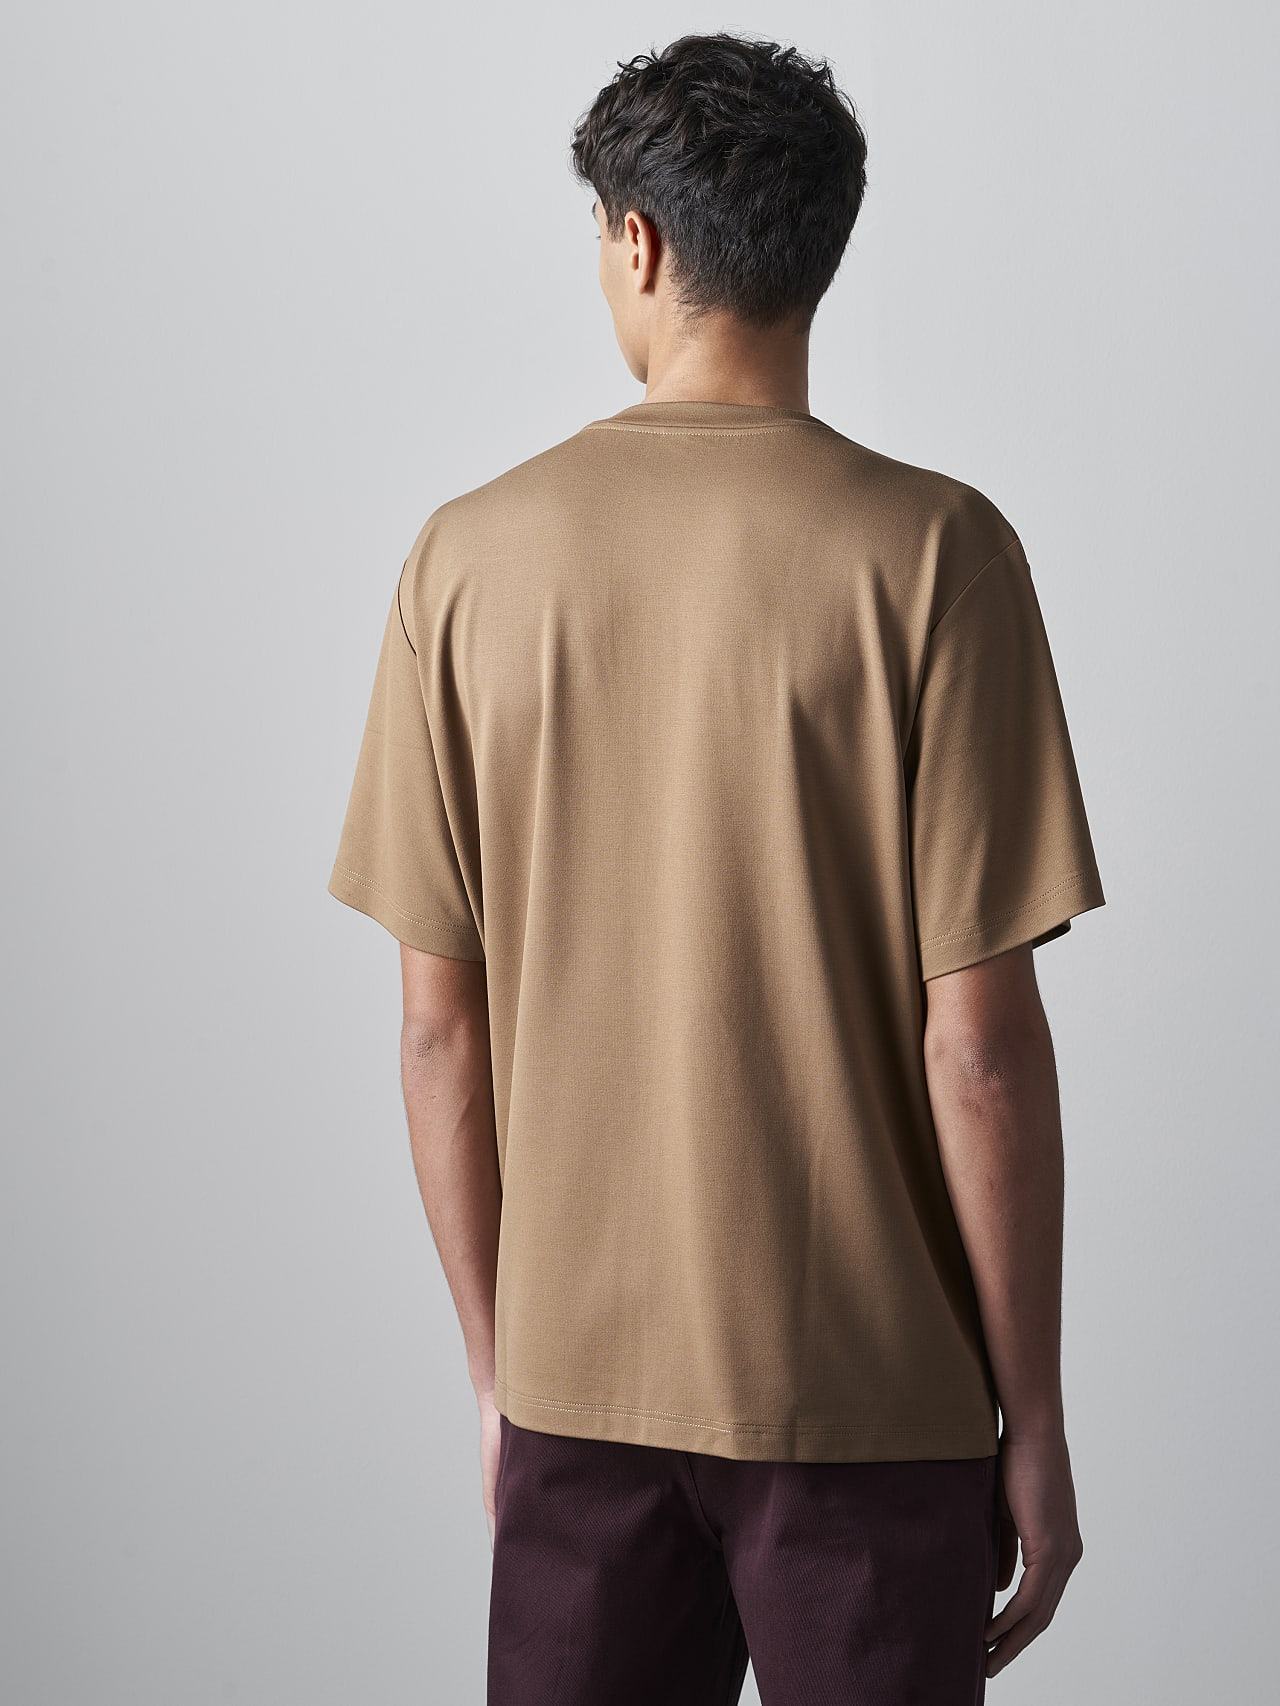 JAHEV V1.Y5.02 Relaxed Logo T-Shirt gold Front Main Alpha Tauri